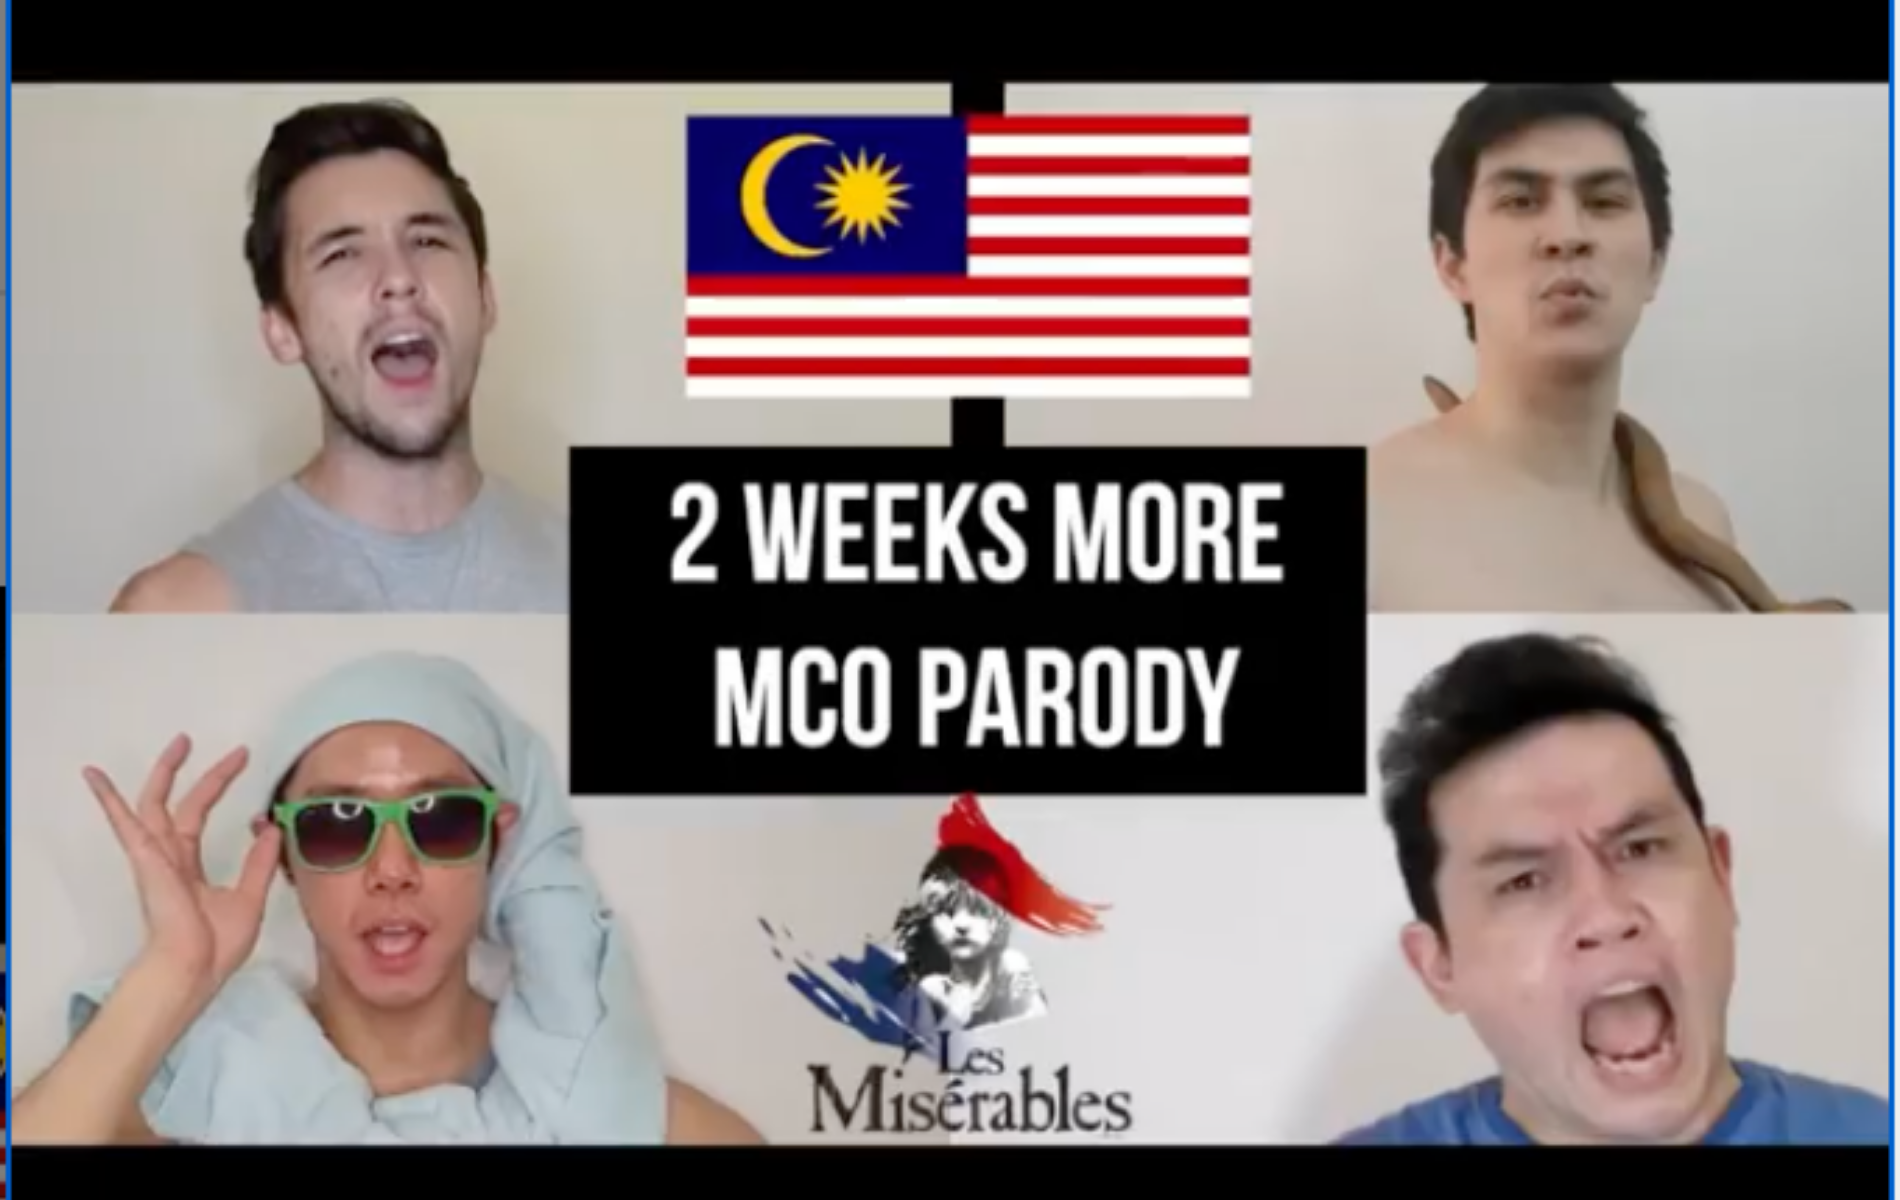 Watch Mark O'Dea & Friends Perform A Musical Parody To Lift Our Spirits During MCO 2.0